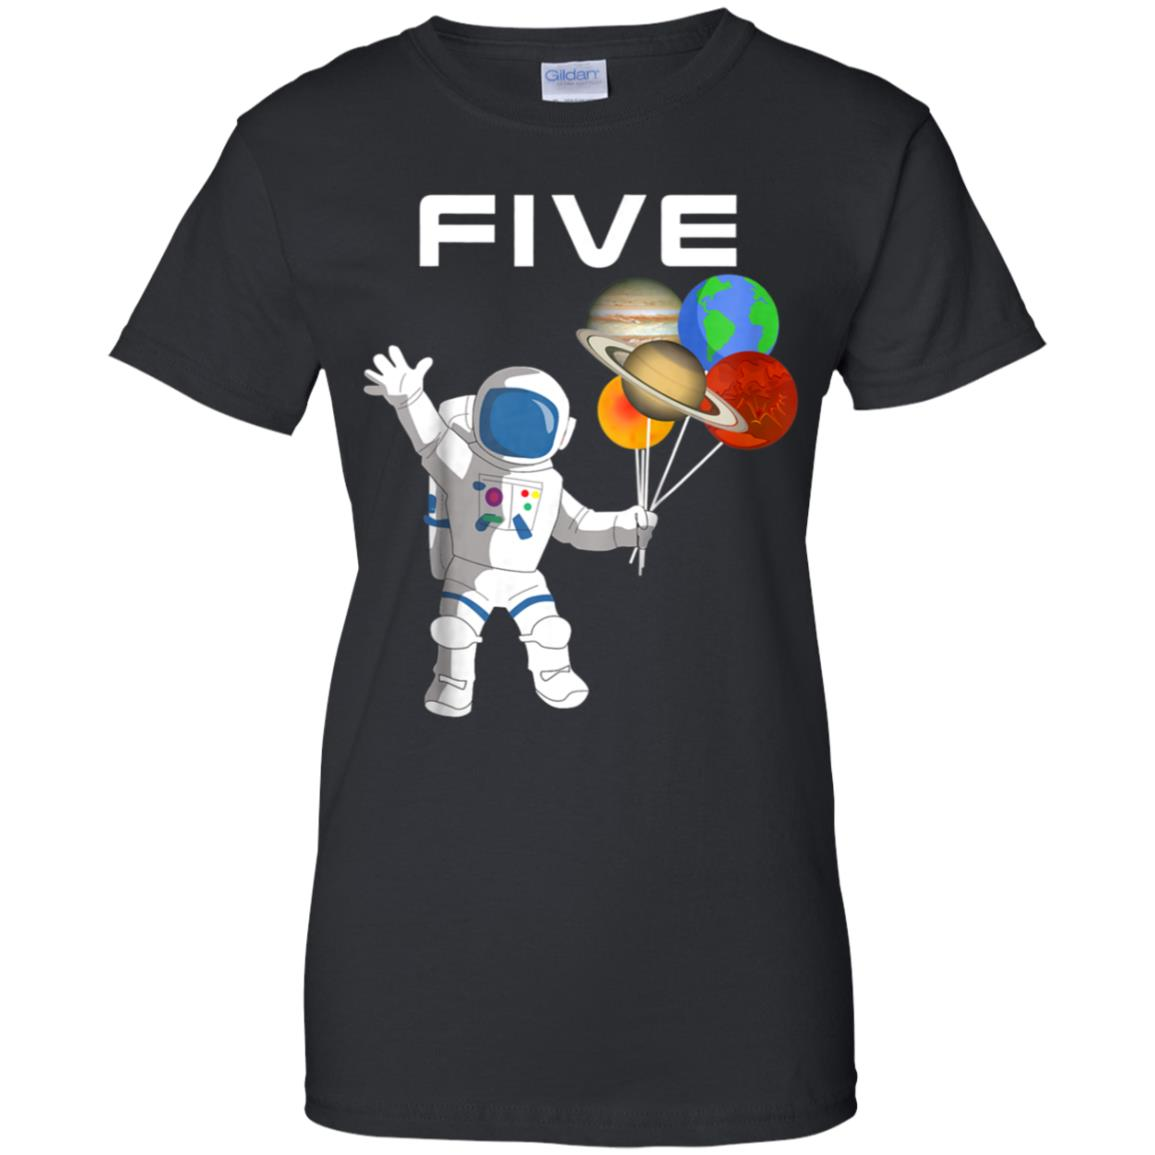 Kids 5 Year Old Outer Space Birthday Party 5th Shirt B